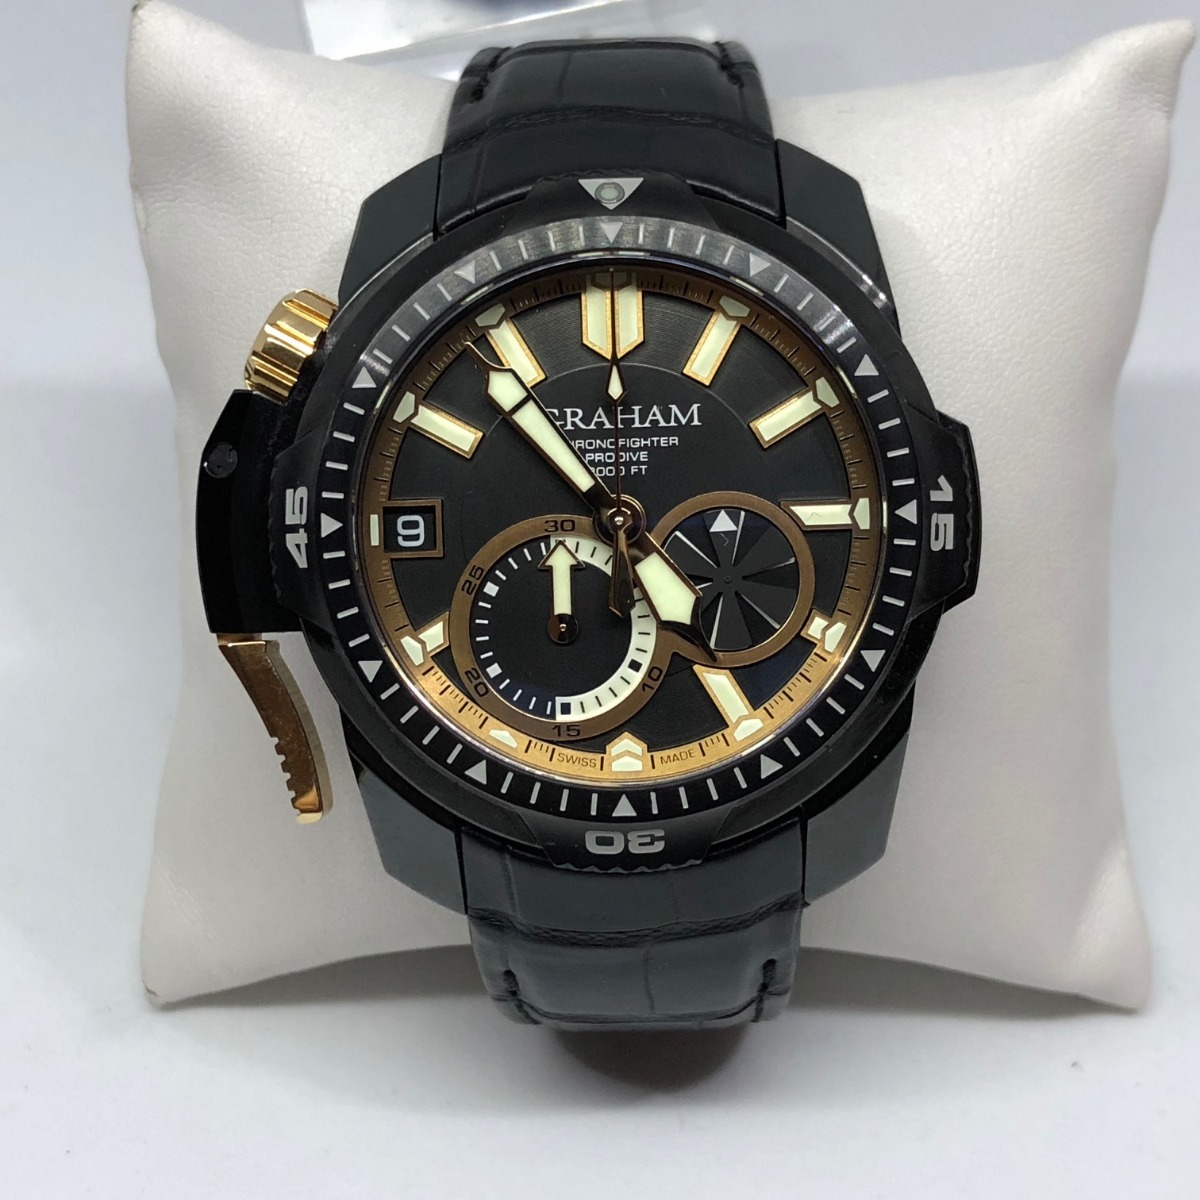 e41adf2c3bb7 Graham Chronofighter Prodive Acero Inoxidable Y Caucho ...